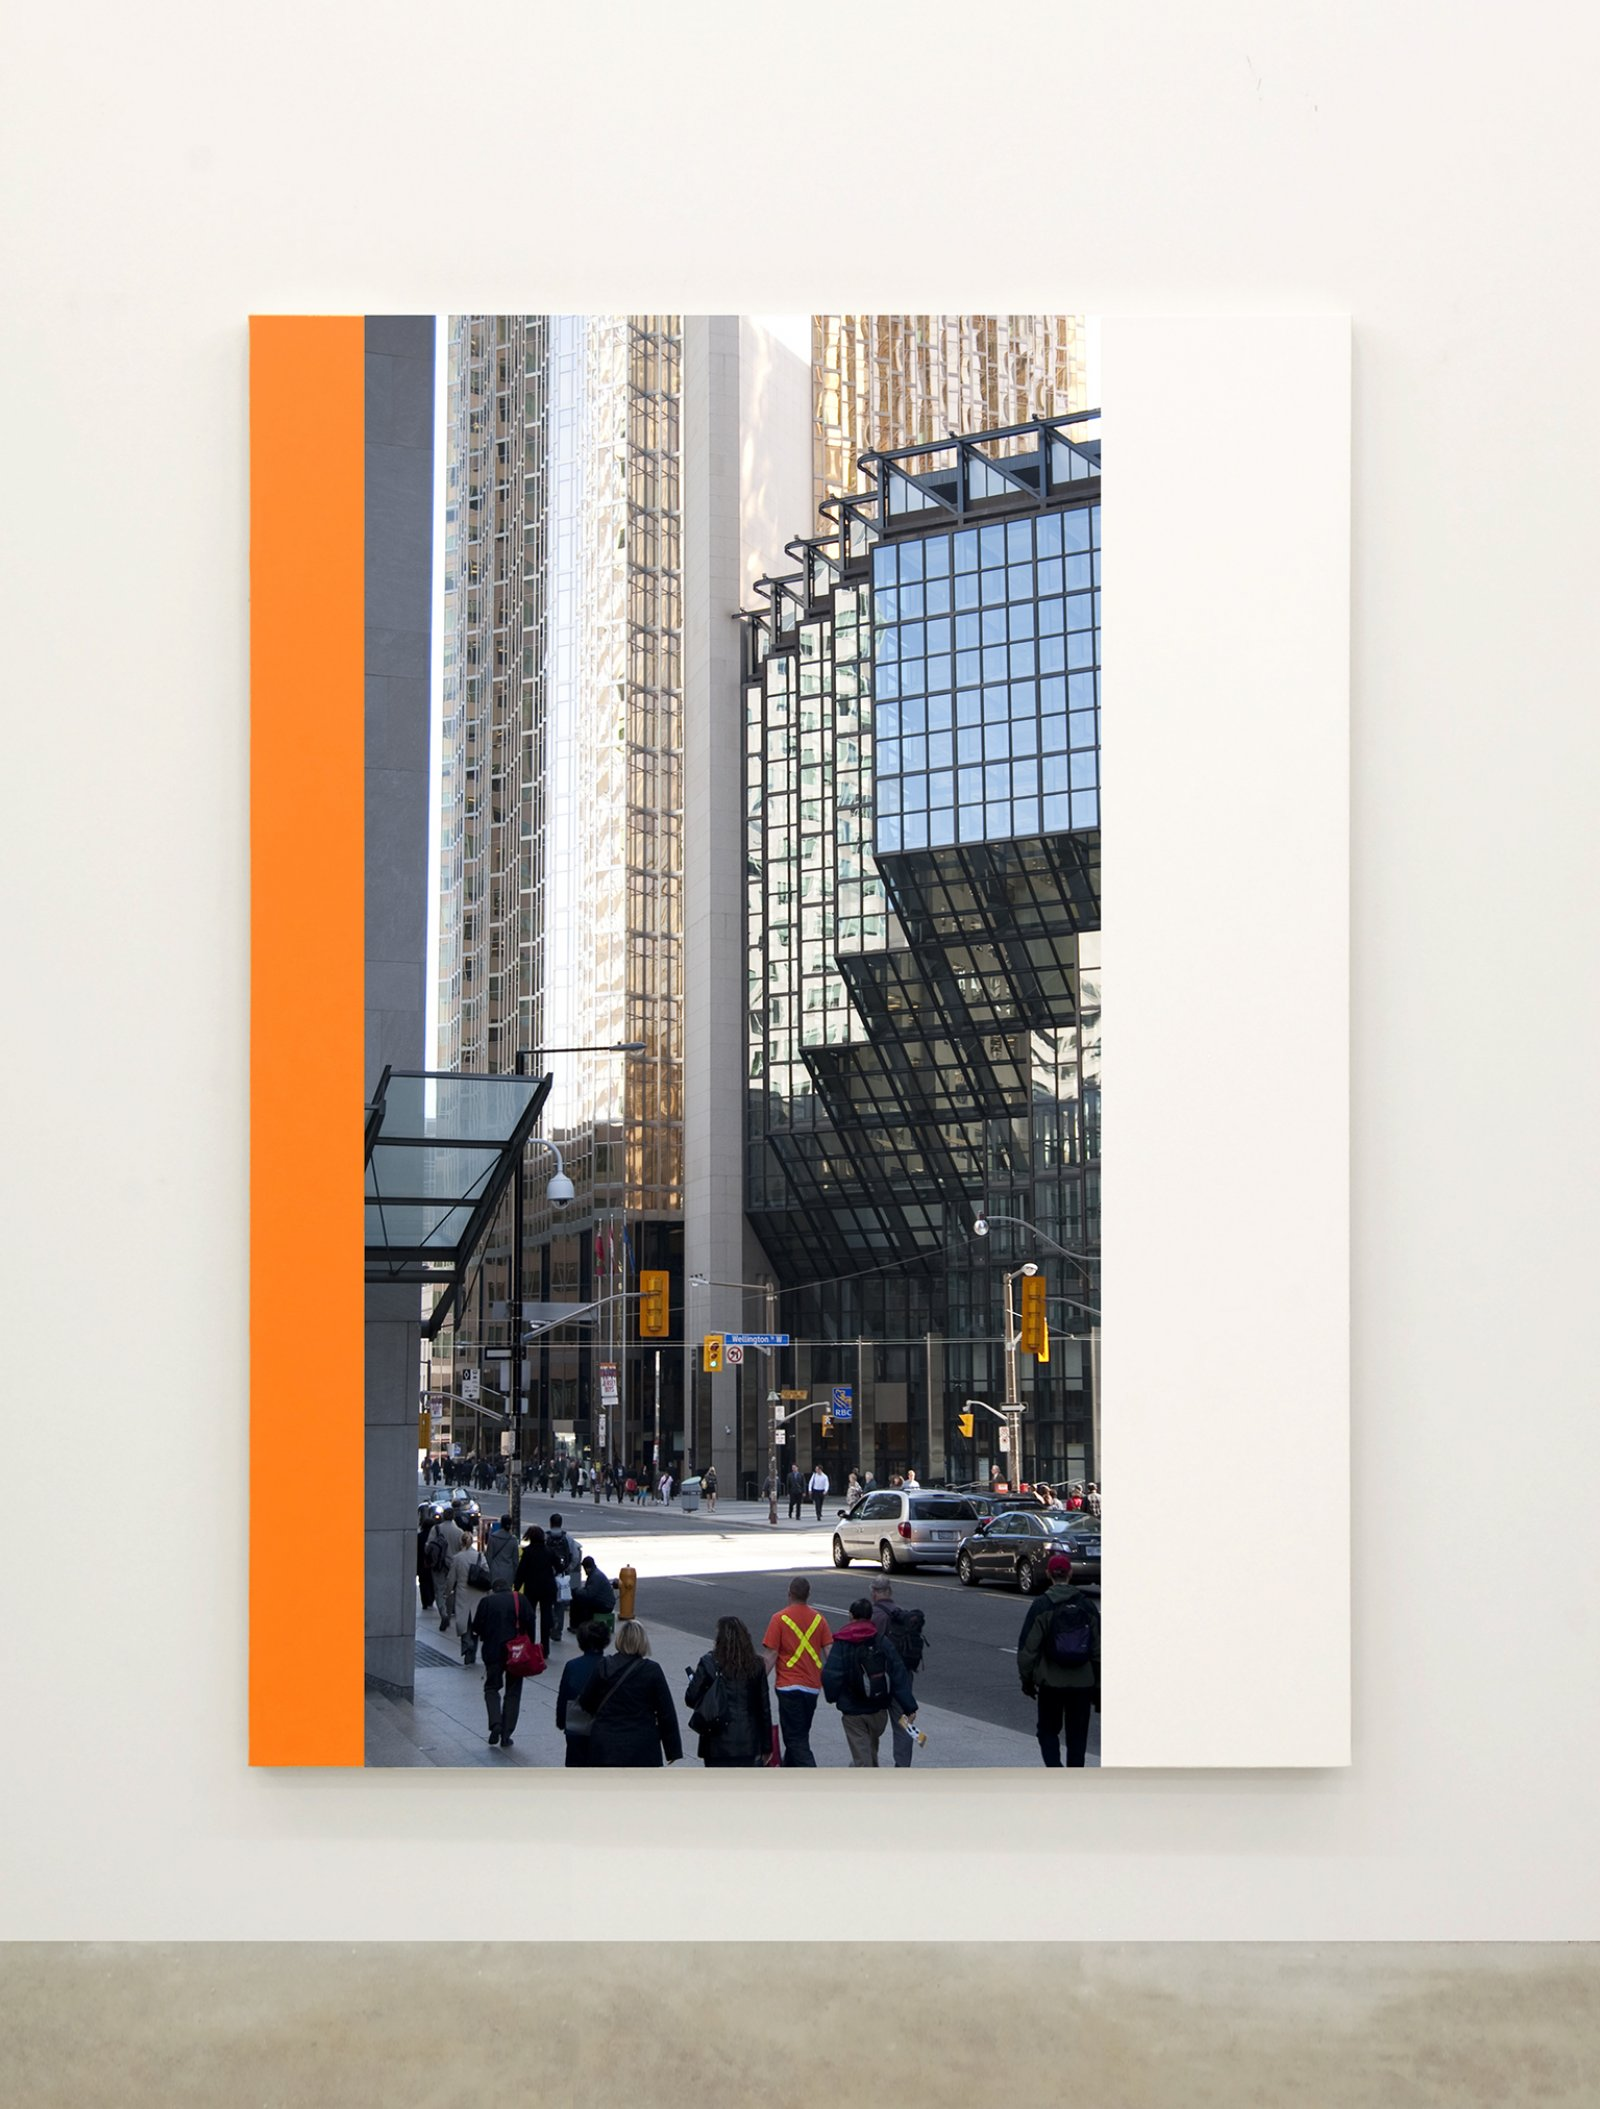 Ian Wallace,Abstract Painting XI(The Financial District), 2010,12 photolaminate with acrylic on canvas panels, each 96 x 72 in. (244 x 183 cm)